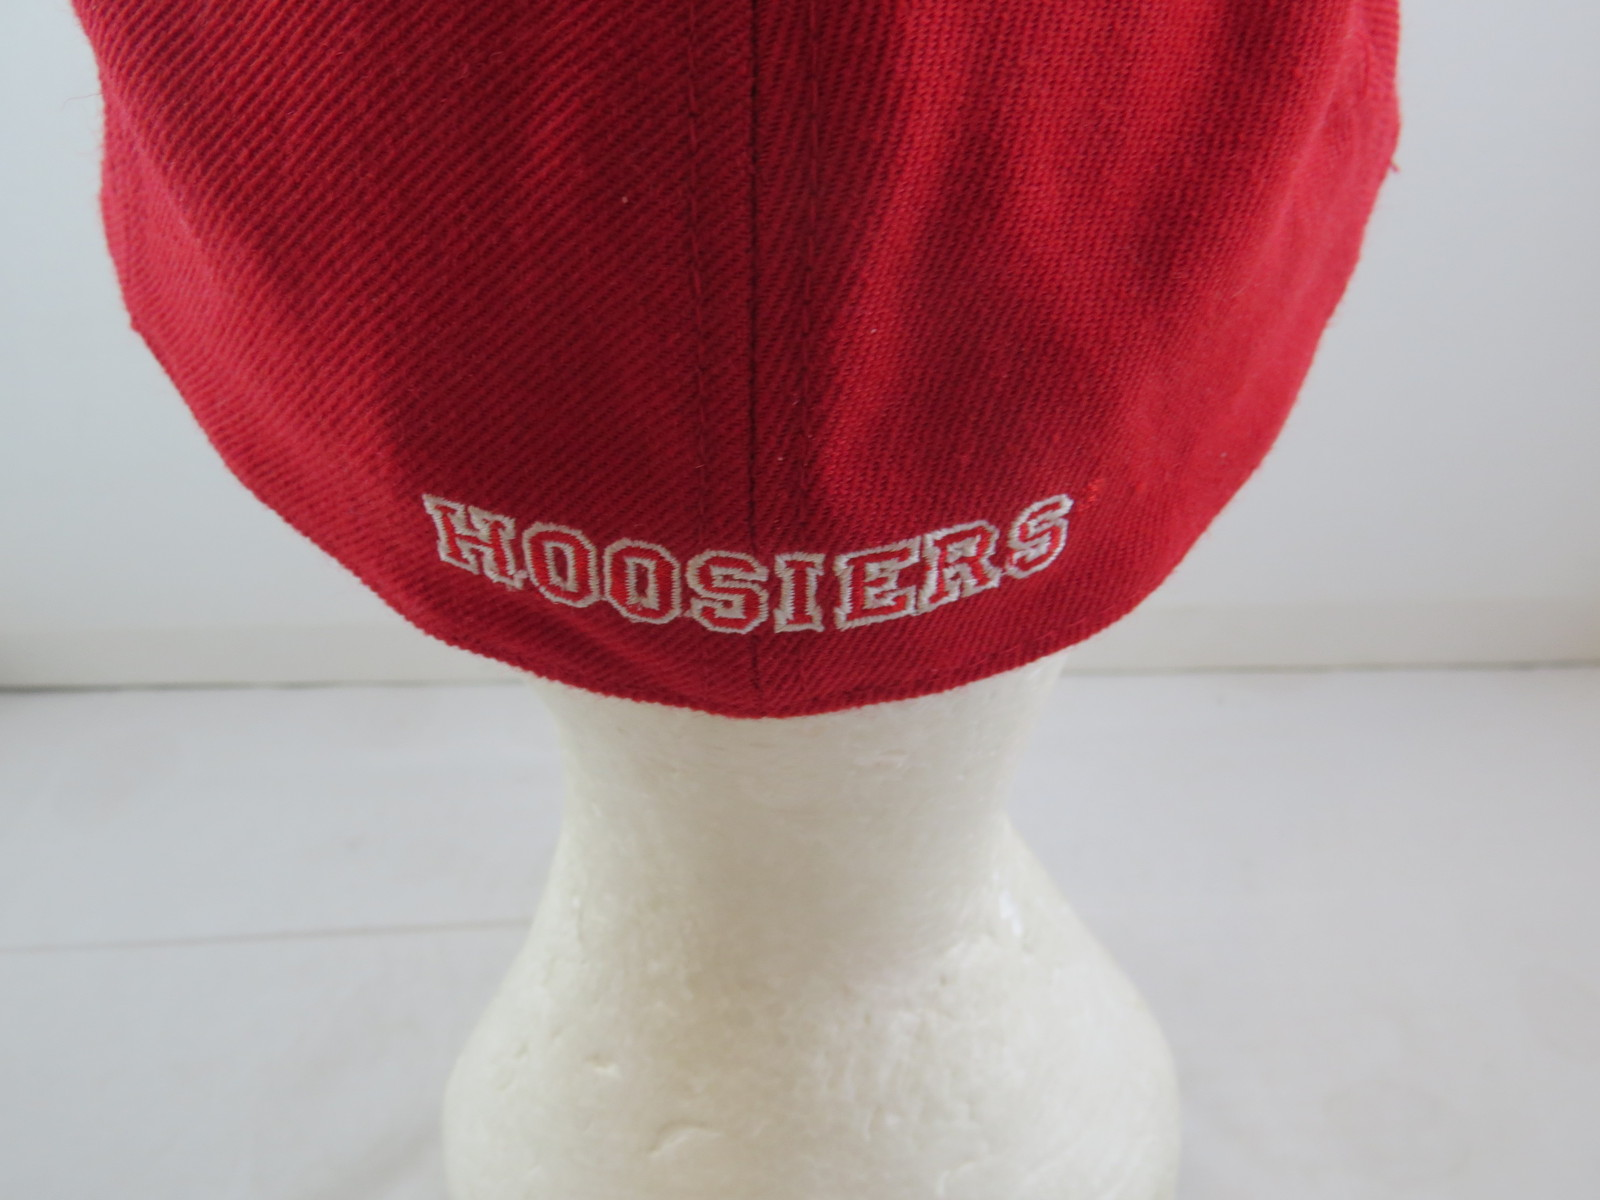 Retro Indiana Hoosiers Fitted Hat - IU logo by American Needle - Fitted 6 7/8